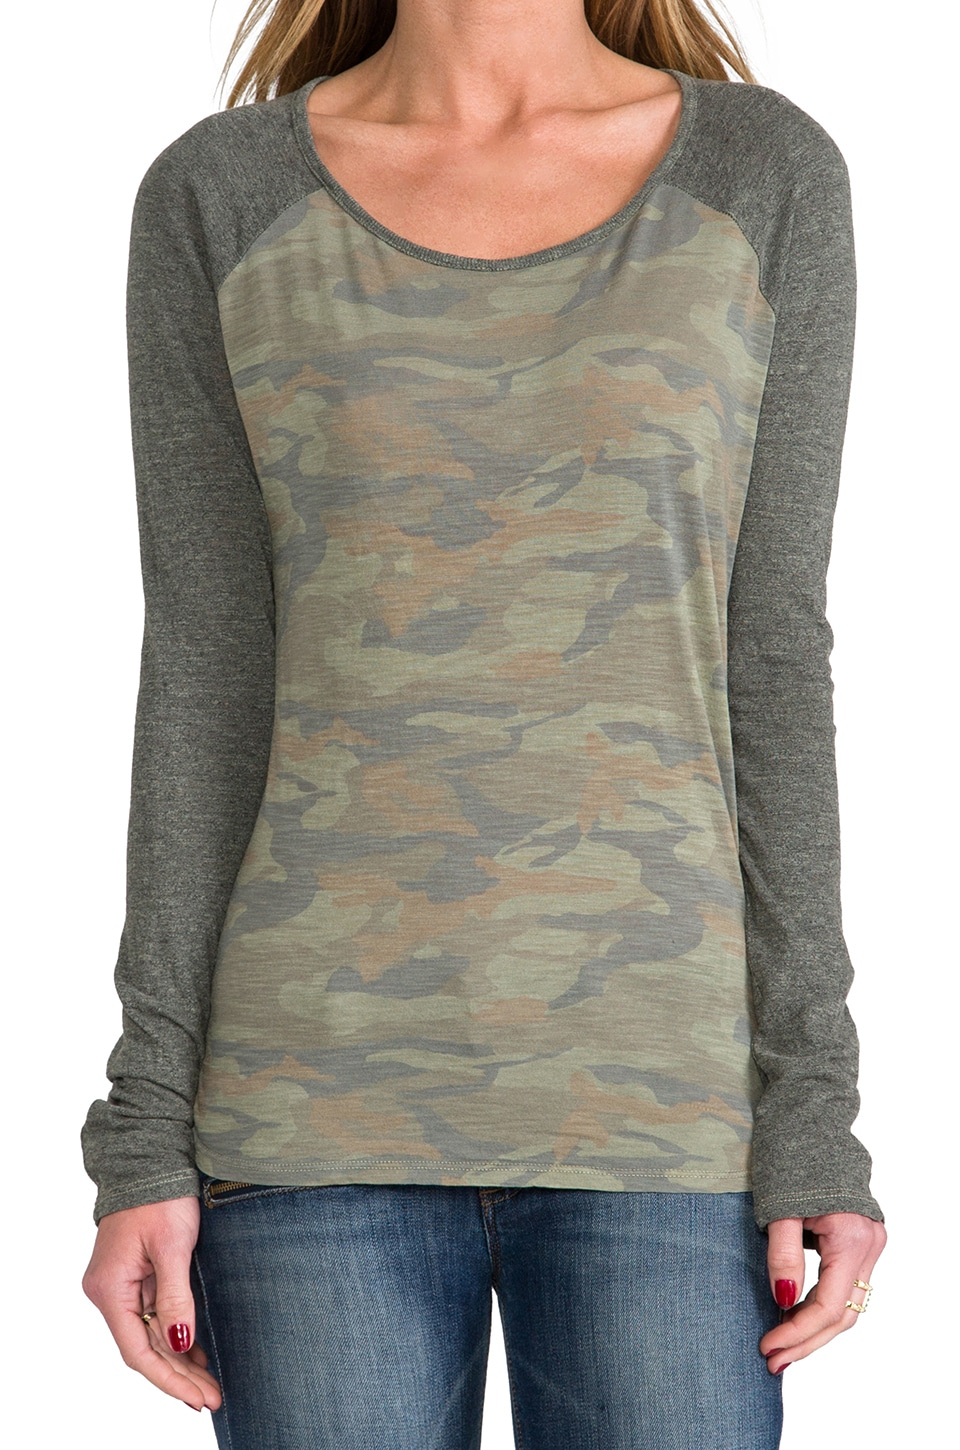 MONROW Camo Print Rock Tee in Army